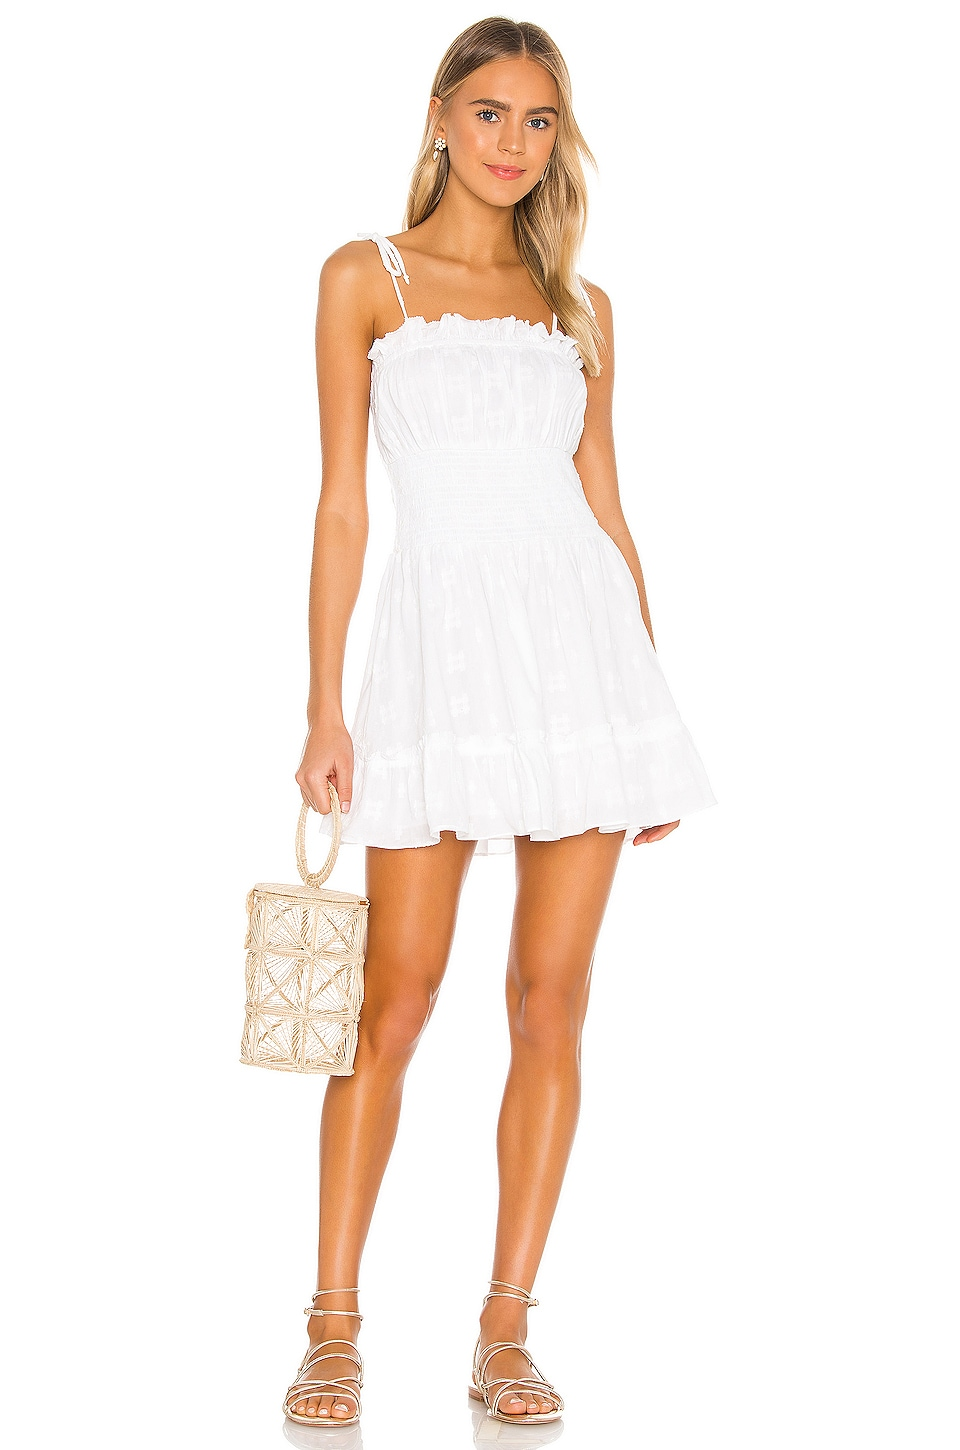 Marrakesh Mini Dress             Cleobella                                                                                                       CA$ 231.57 4